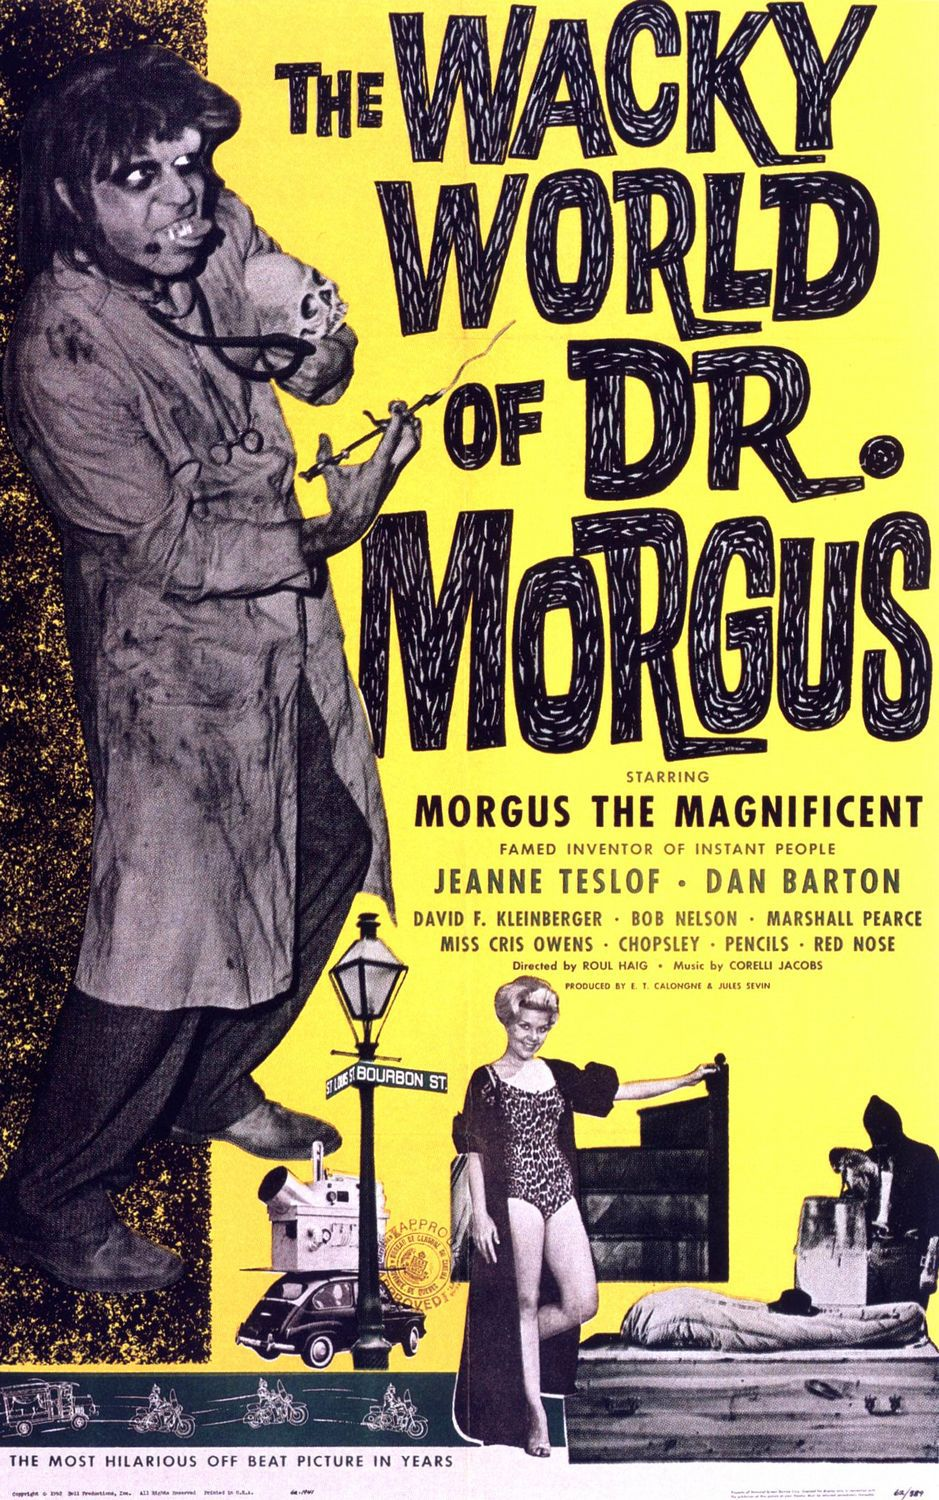 Wacky World of Dr Morgus (1962) - classic cult horror scary thriller film poster